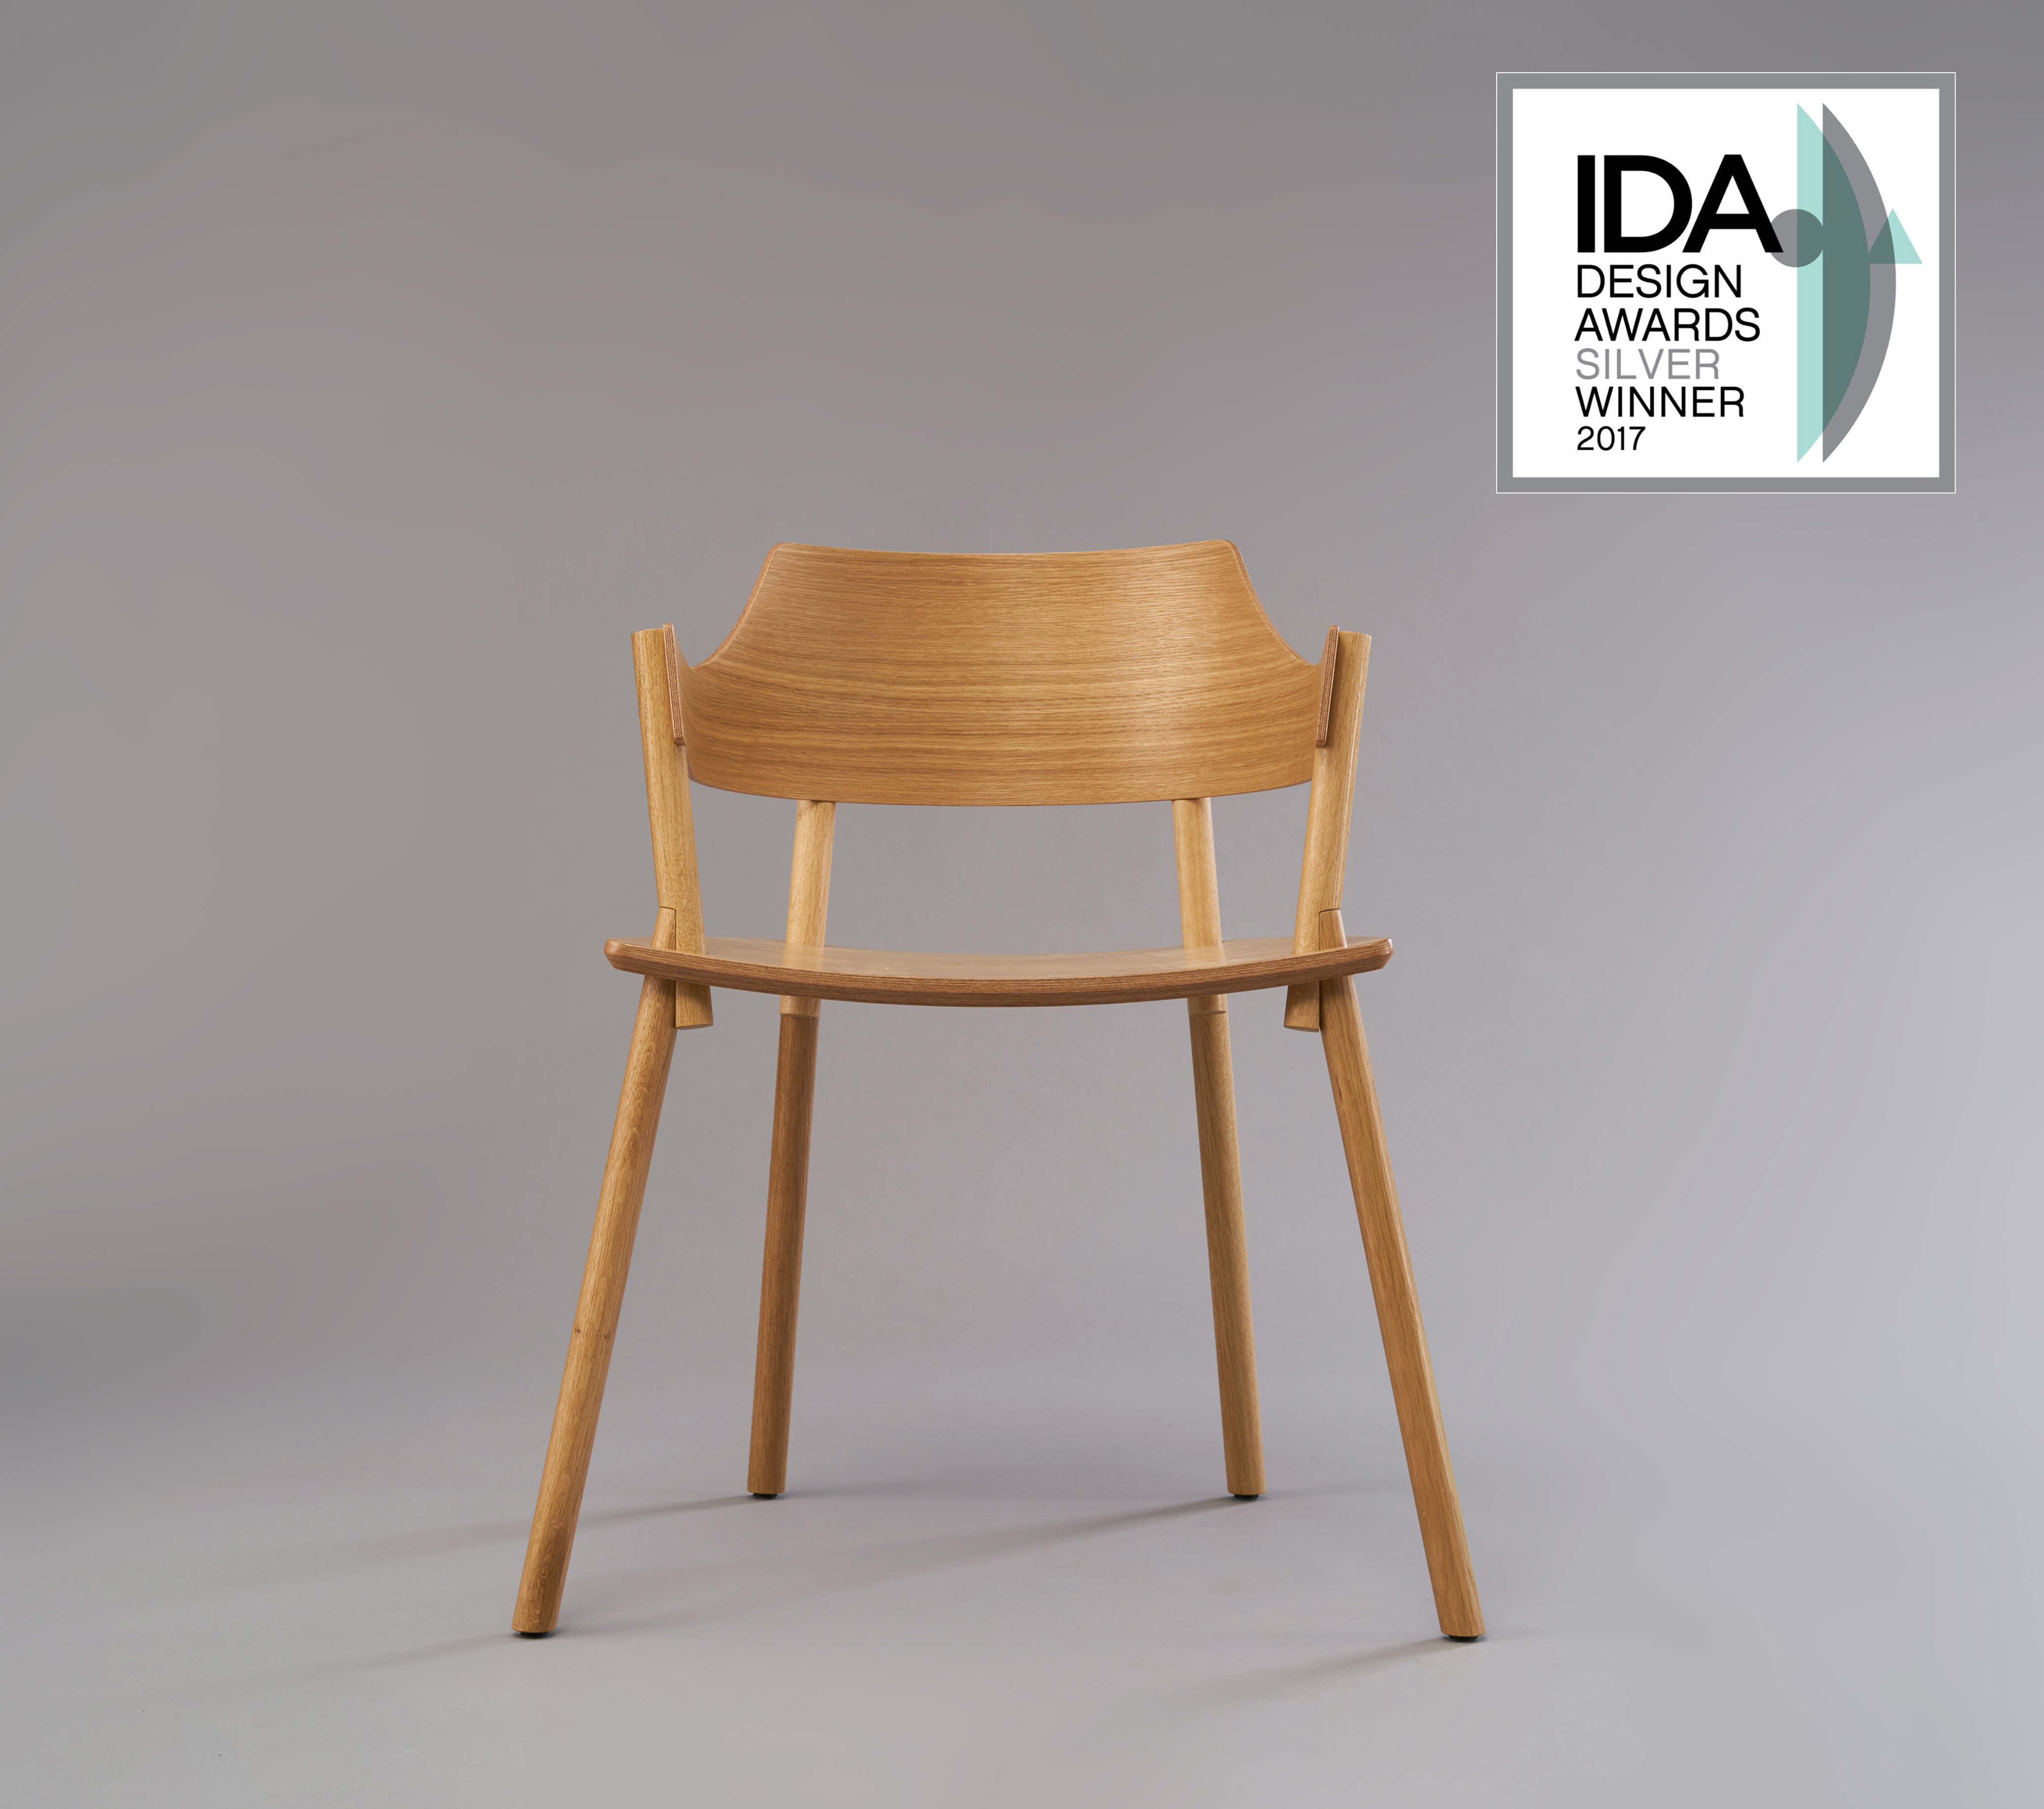 I.P. chair